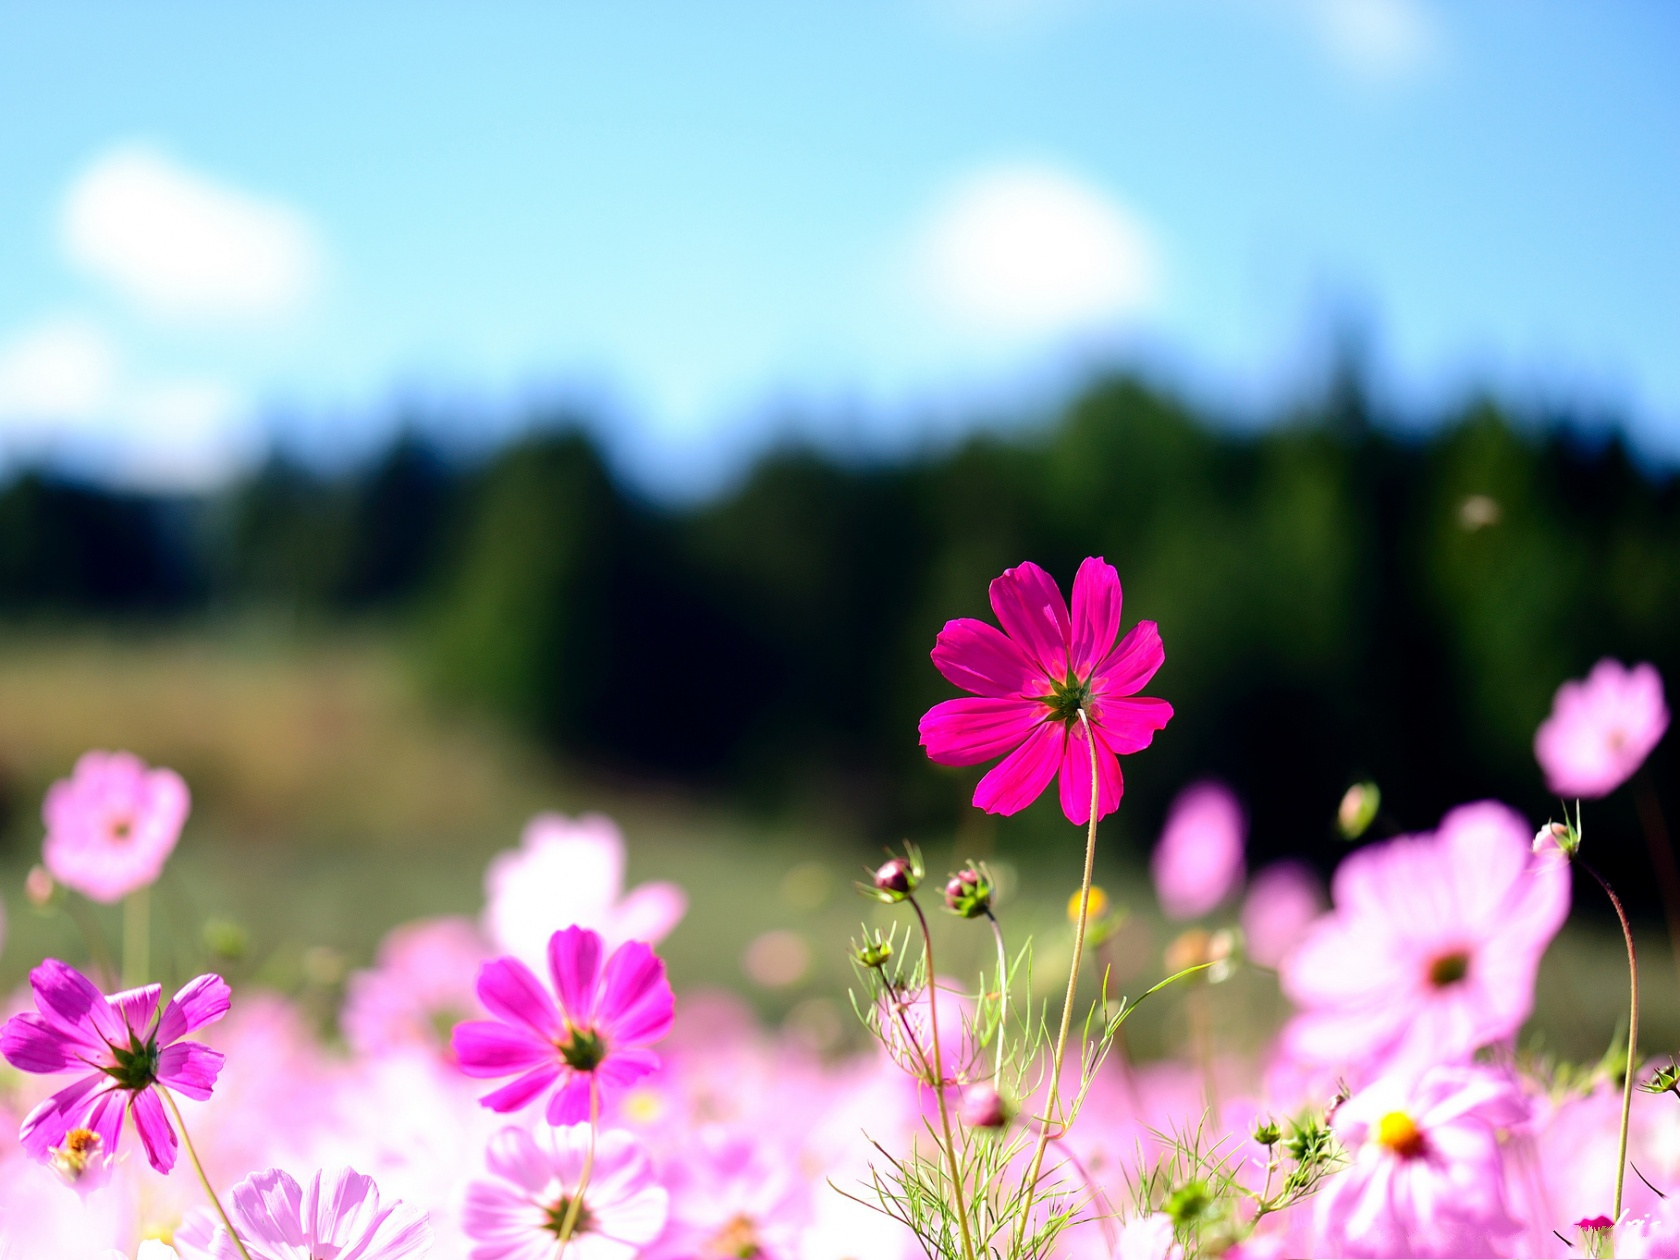 Pink Cosmos Flowers Little Flower in Bloom Smile in the Blue Sky 1600X1200